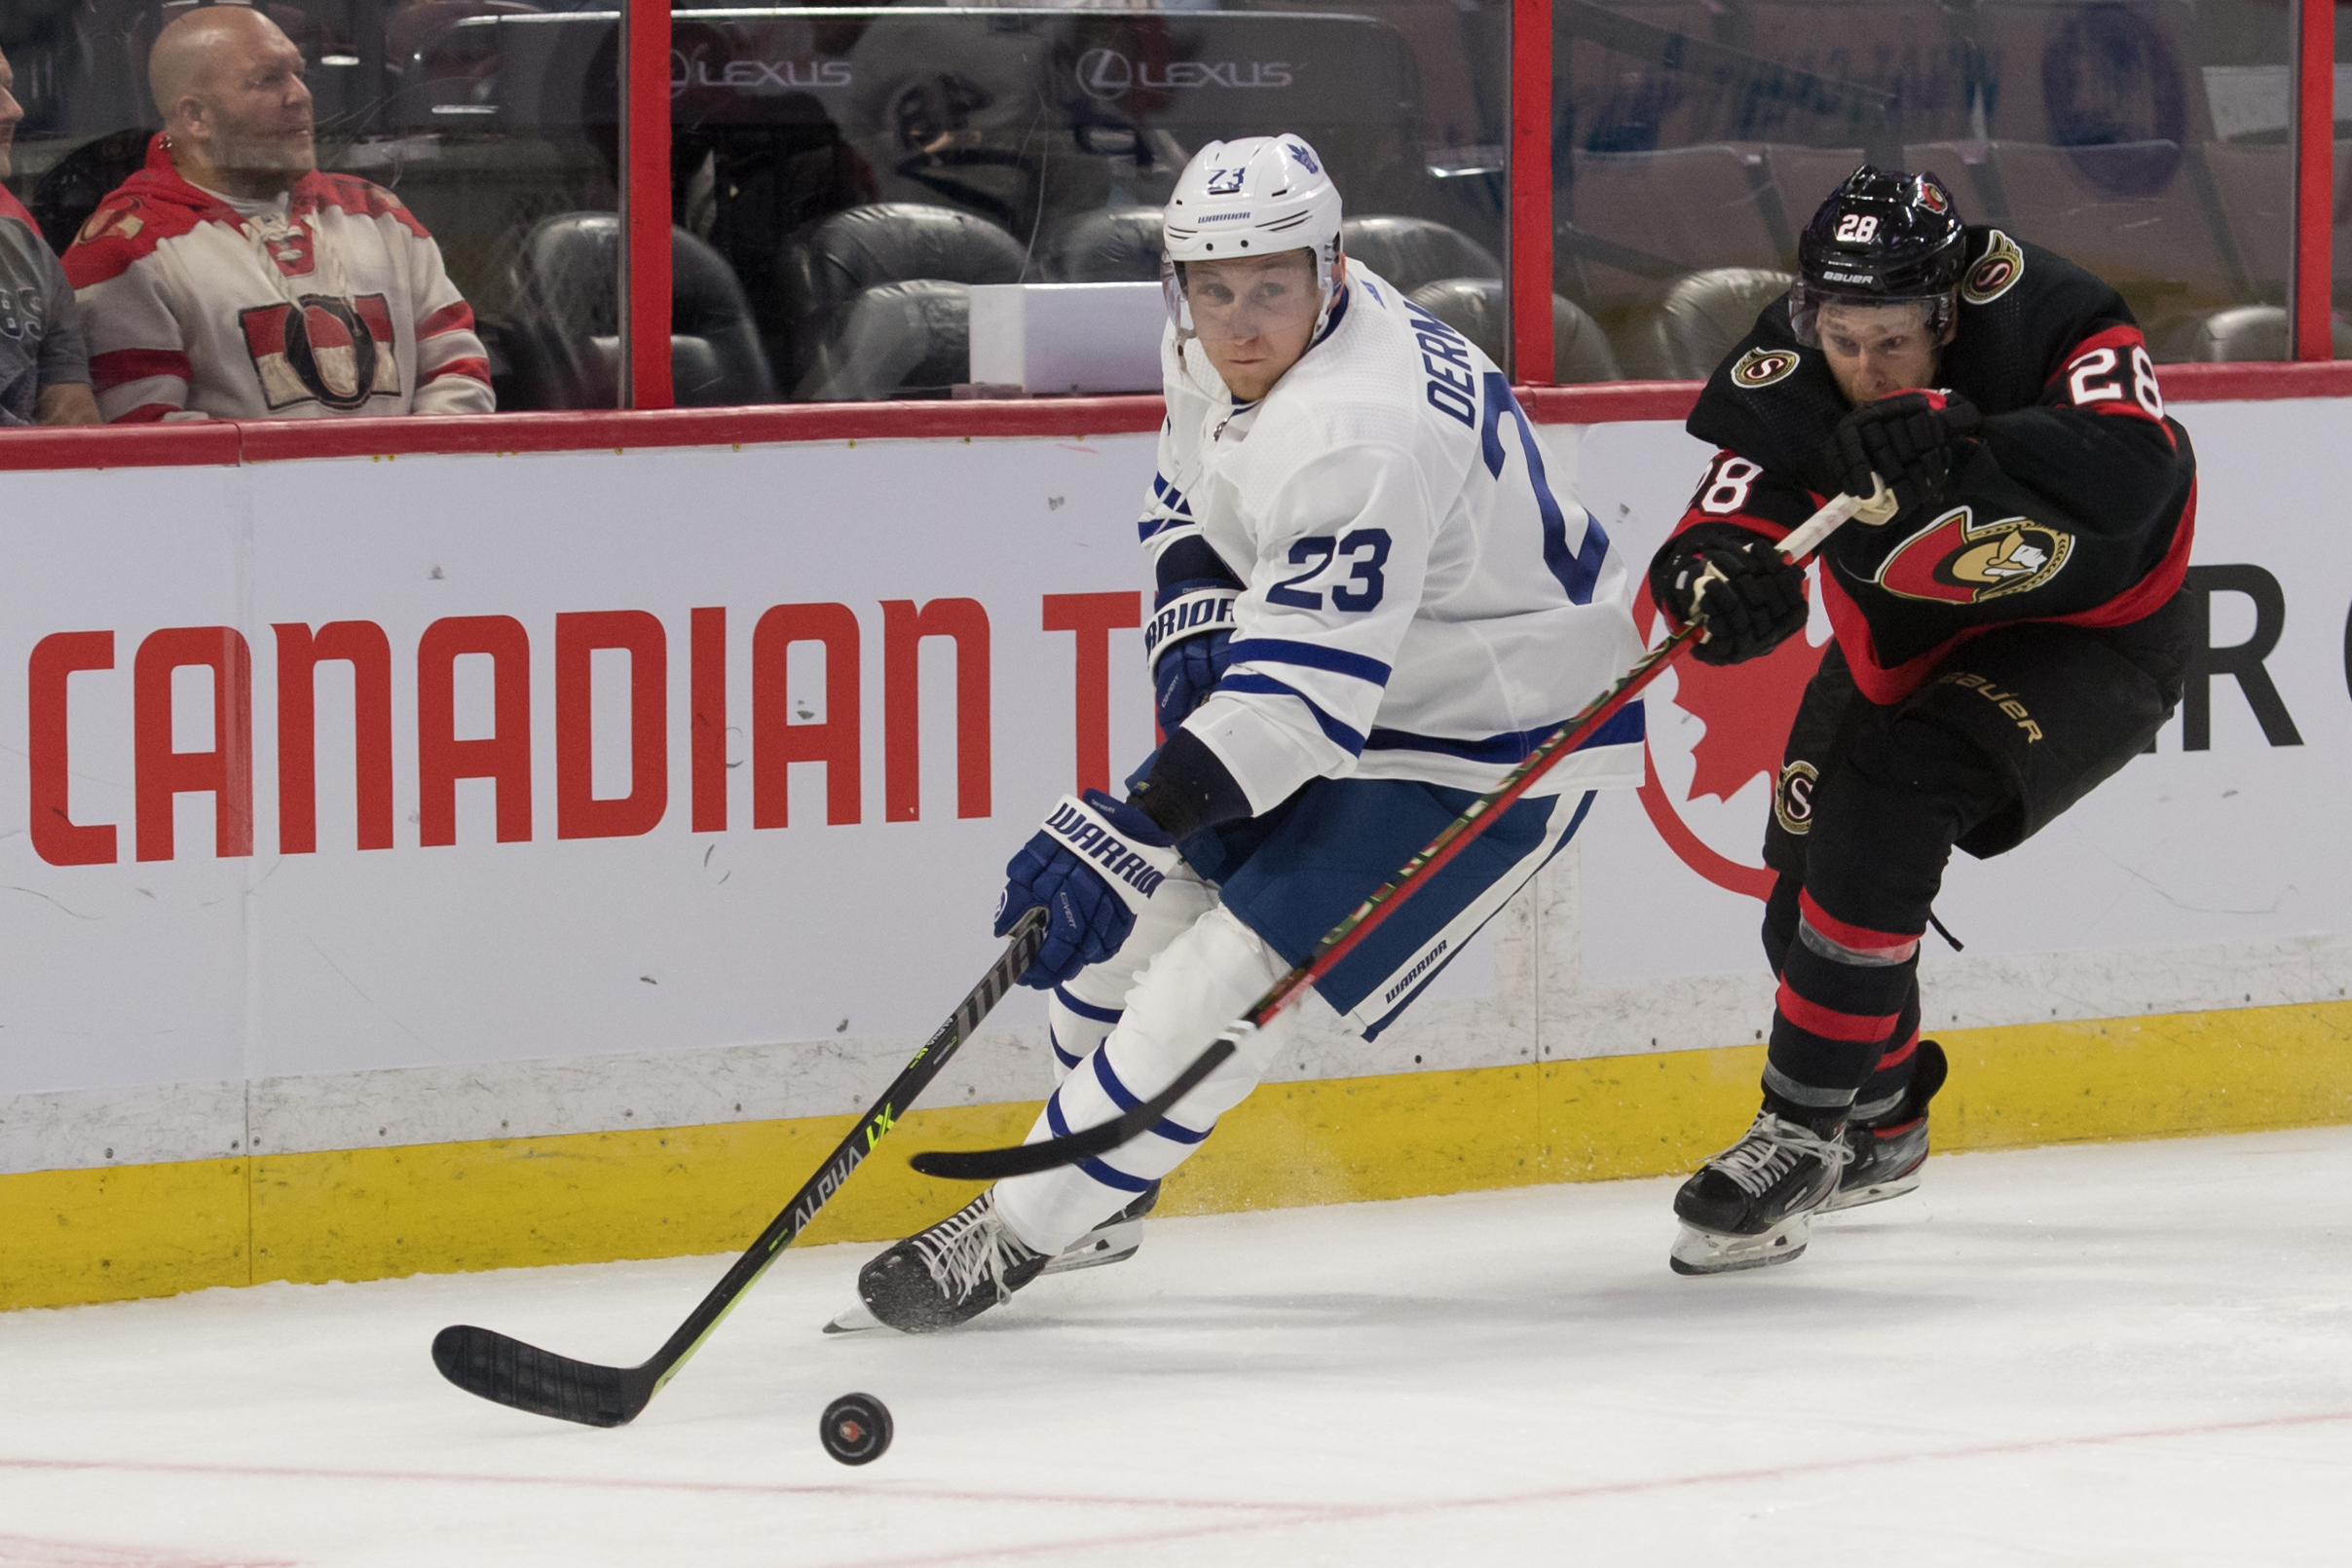 Leafs Travis Dermott and Senators Connor Brown battle for puck in game at Canadian Tire Centre